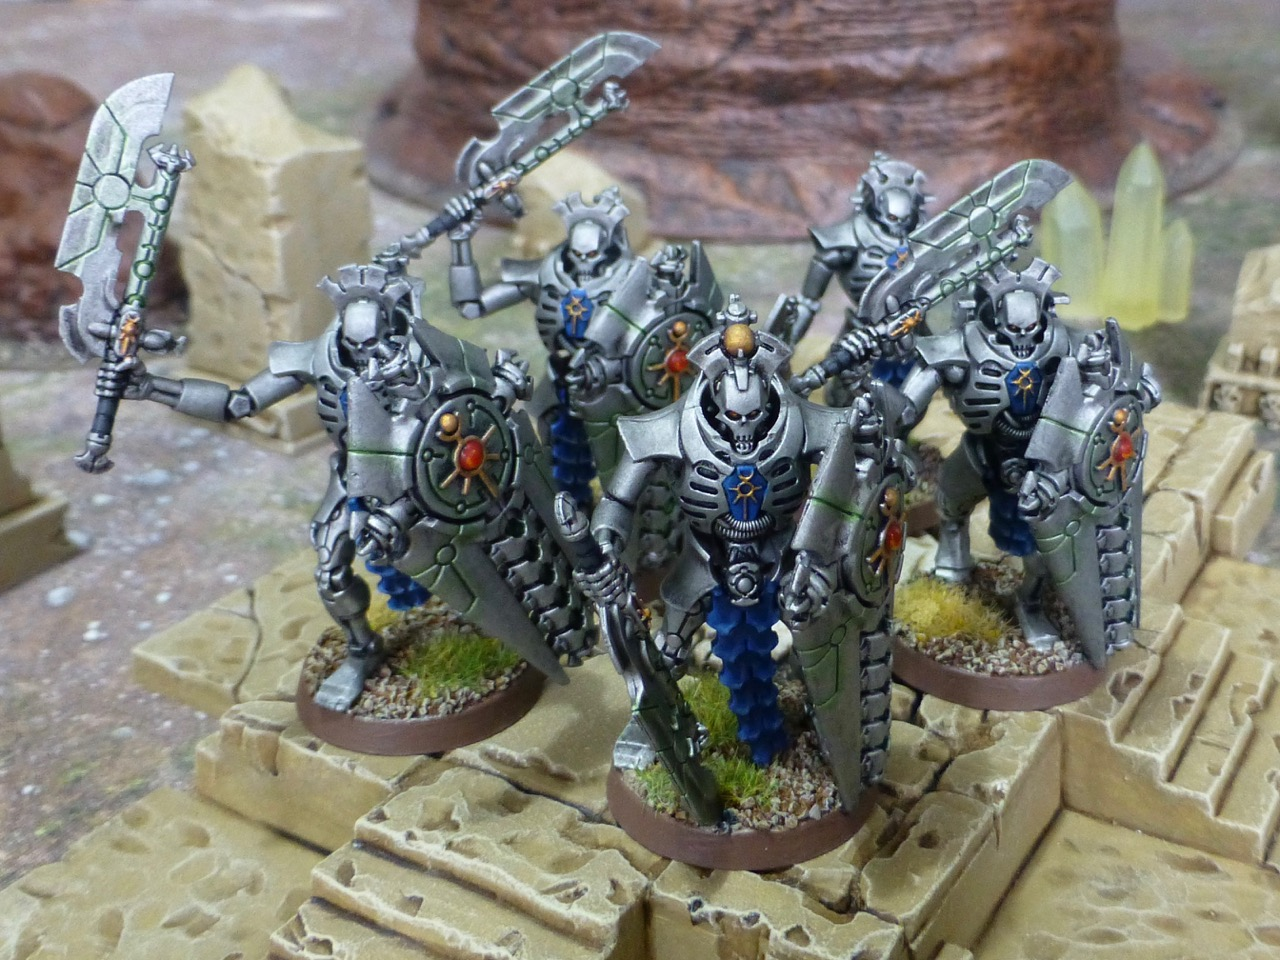 Group of robotic warriors with large shields and swords